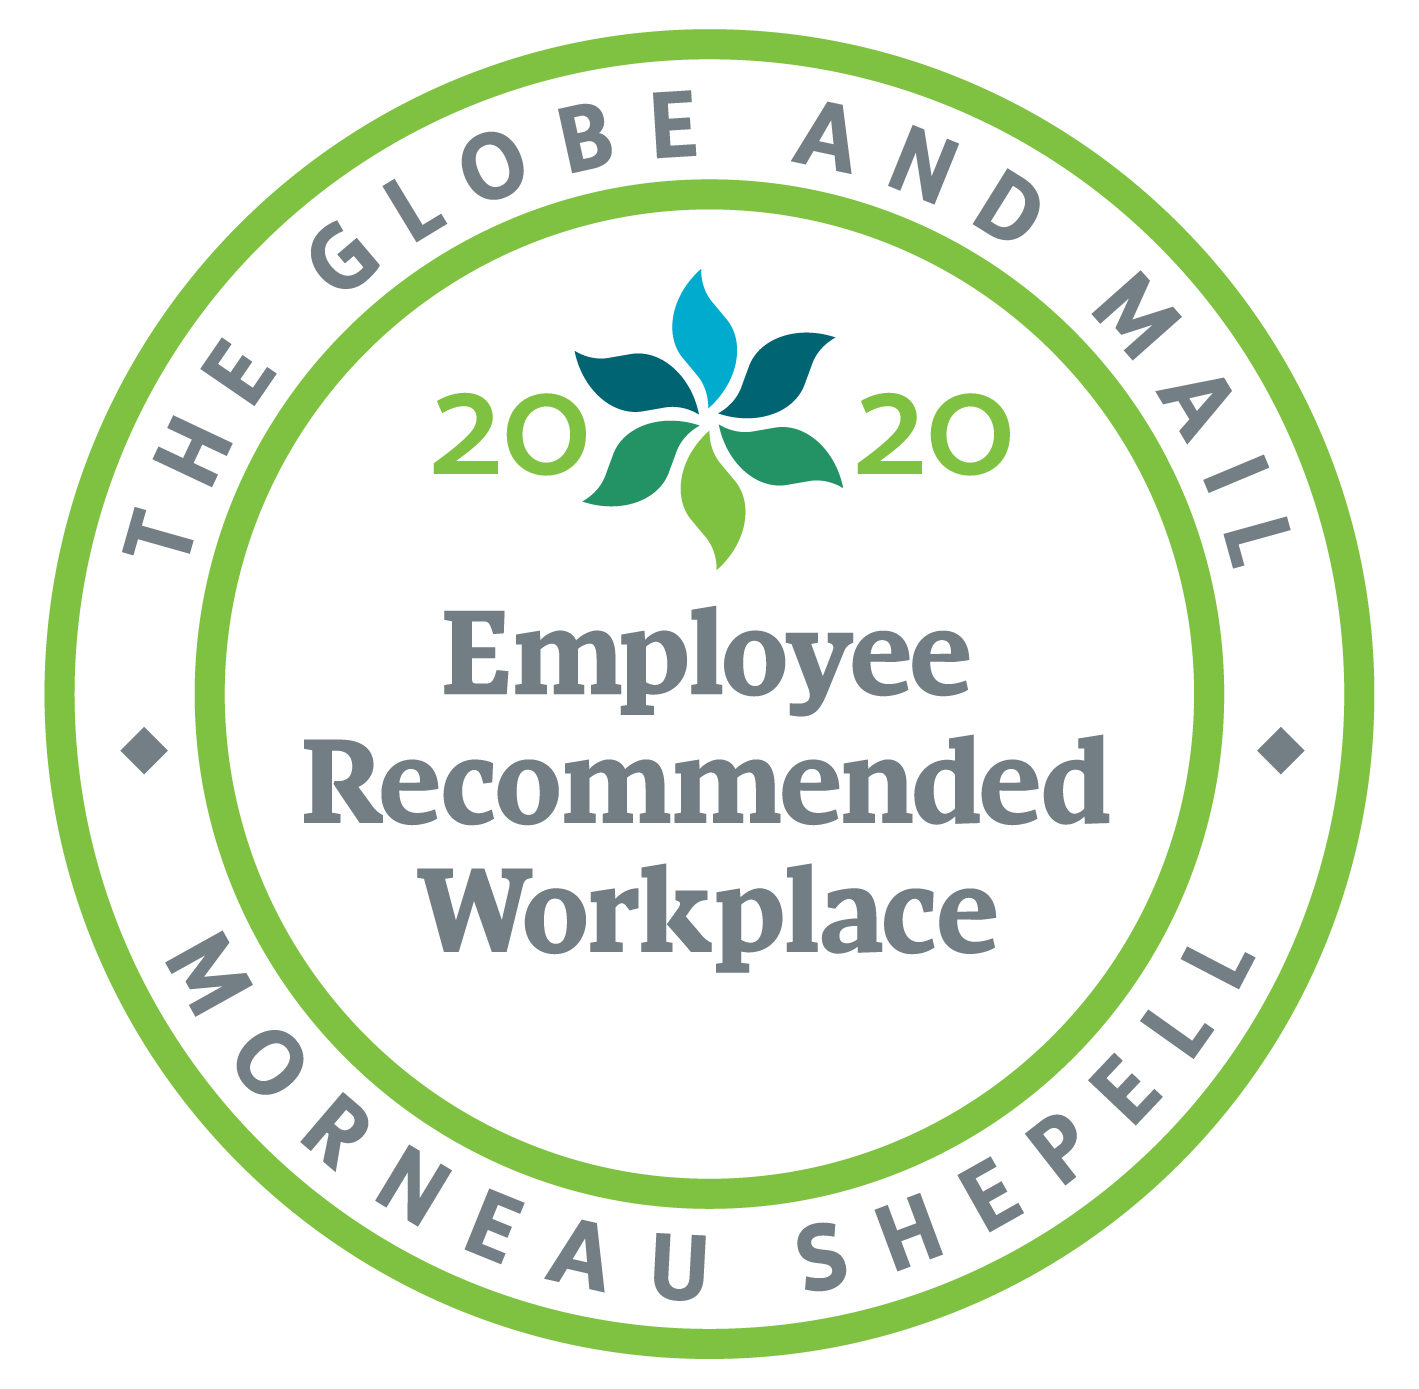 Employee Recommended Workplace 2020